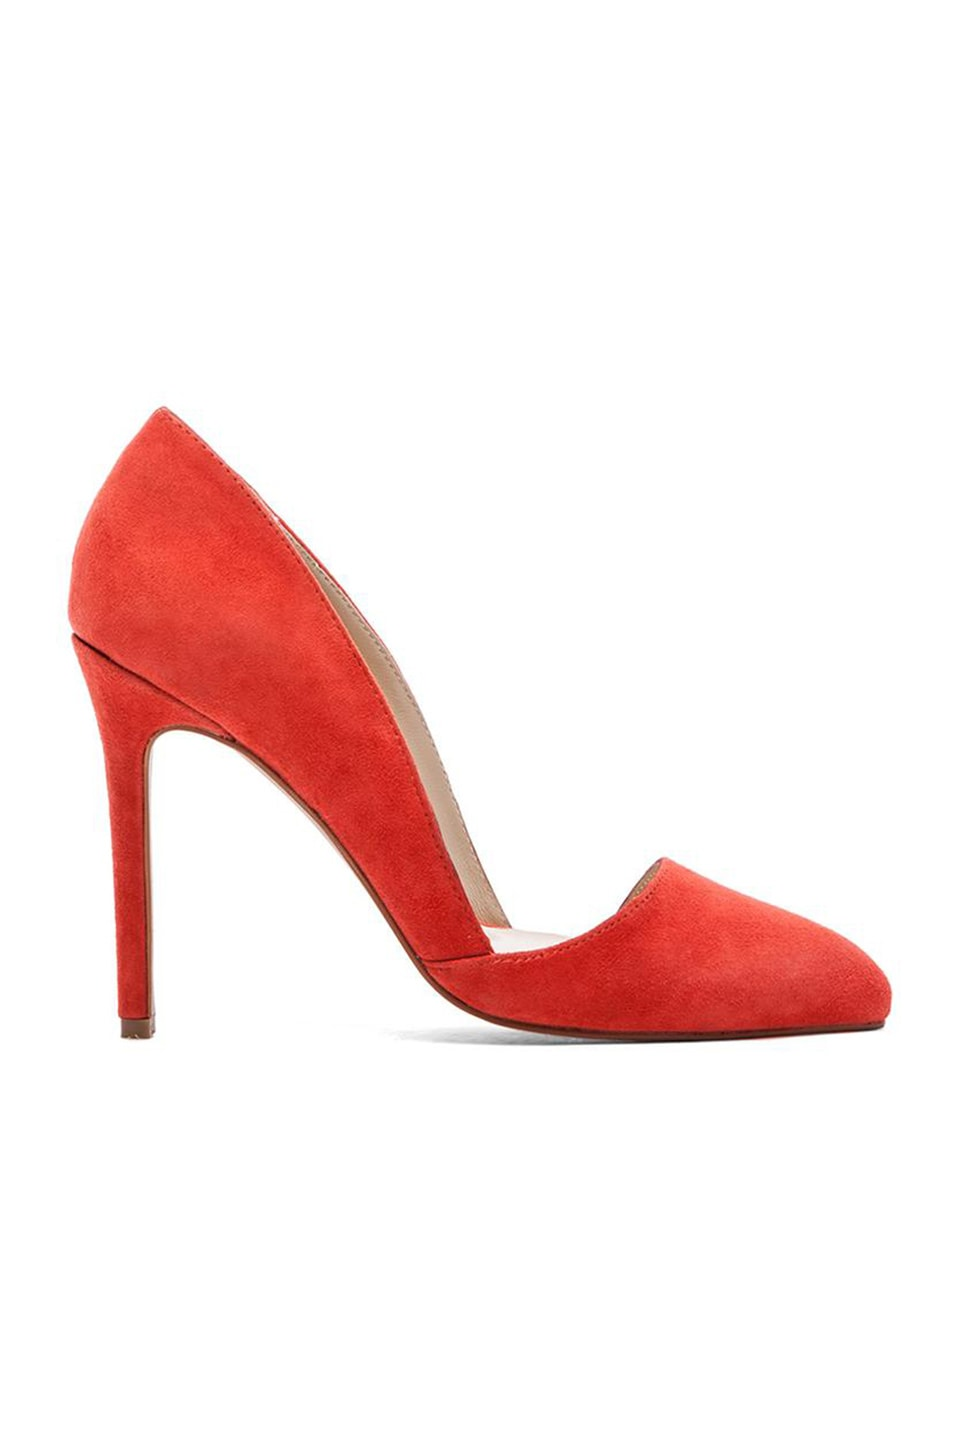 Matiko Bette Heel in Red